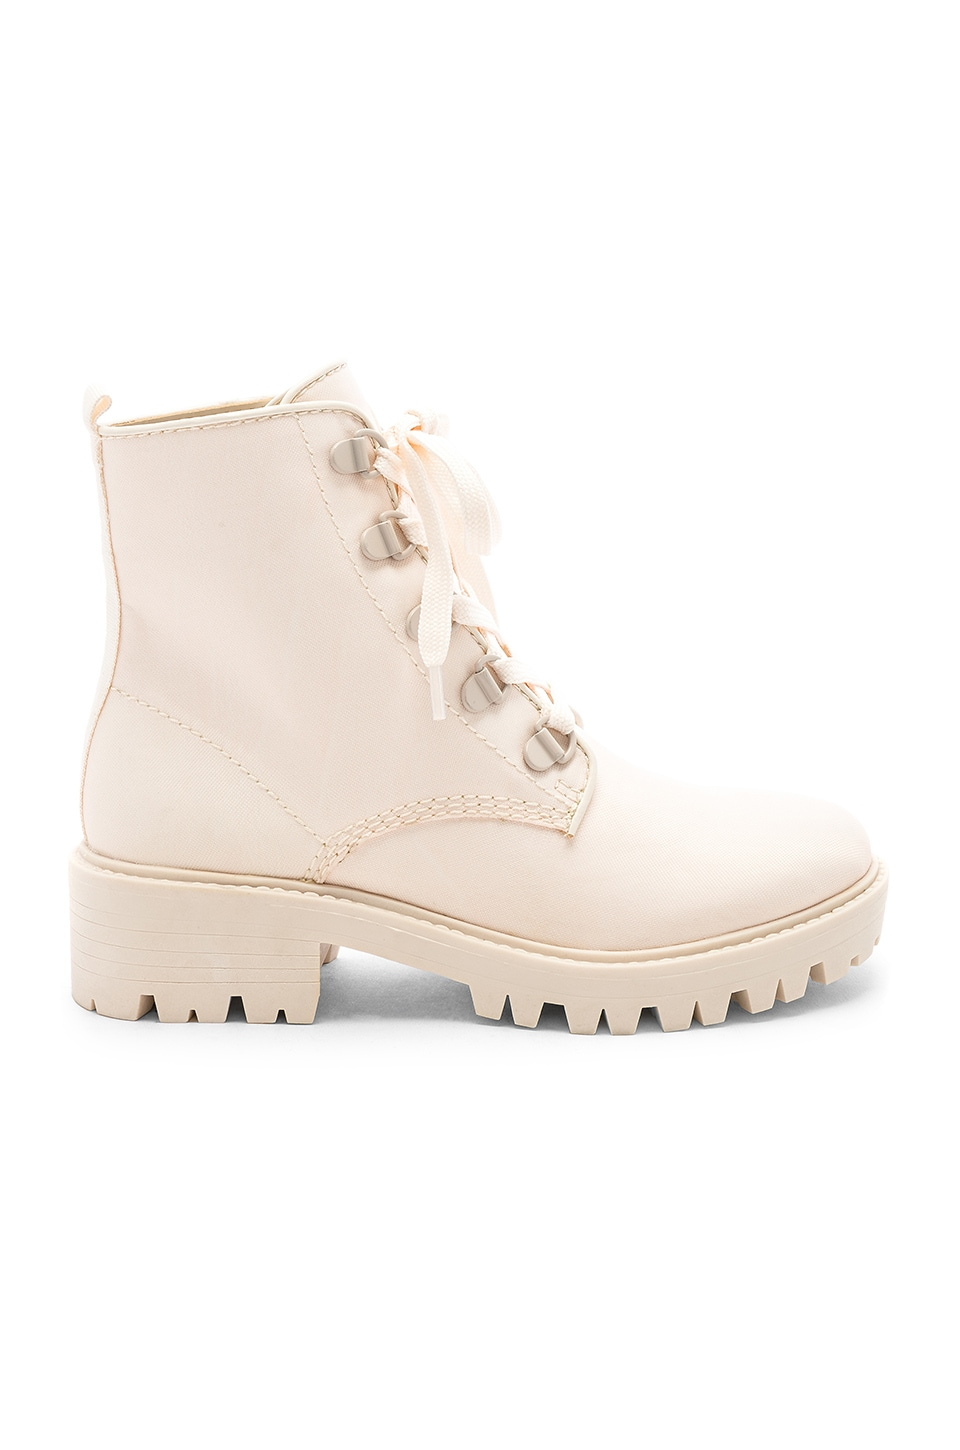 KENDALL + KYLIE Epic Bootie in Ivory